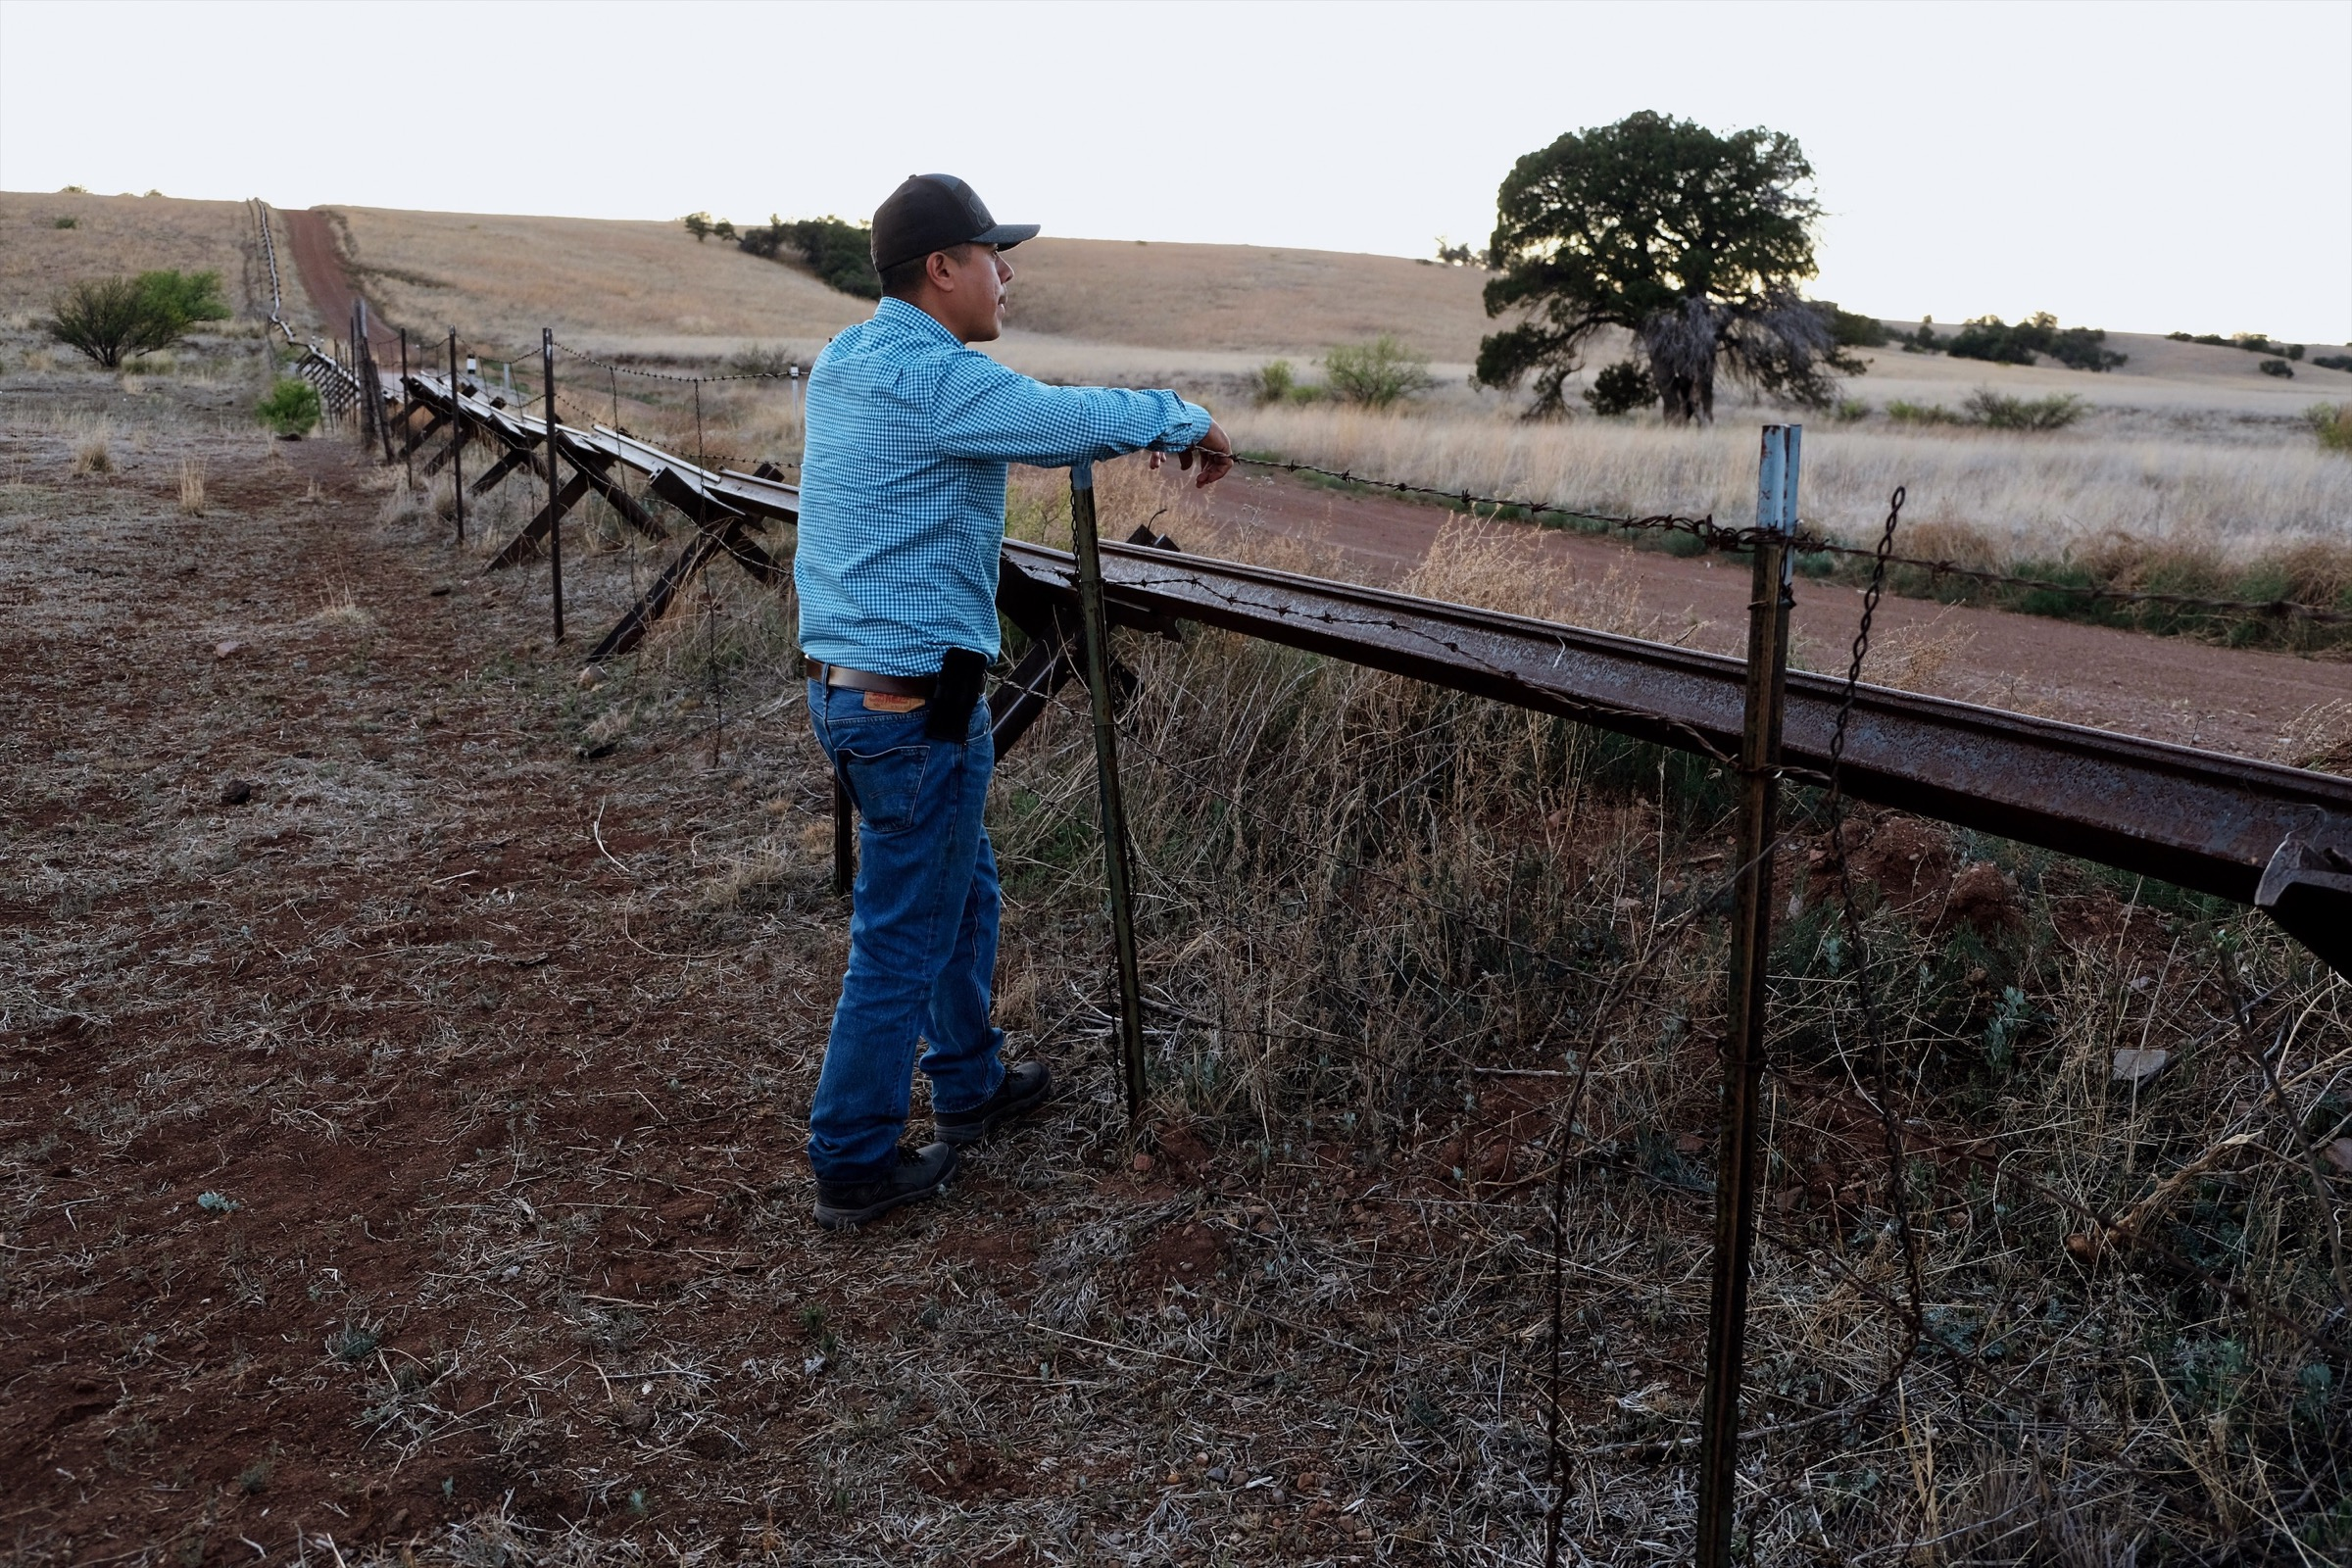 Daniel Toyo, an agricultural technician for the environmental non-profit Naturalia looks into Arizona across a fence that marks the northern boundary of the group's Rancho Los Fresnos property. Photograph by Julian Smith